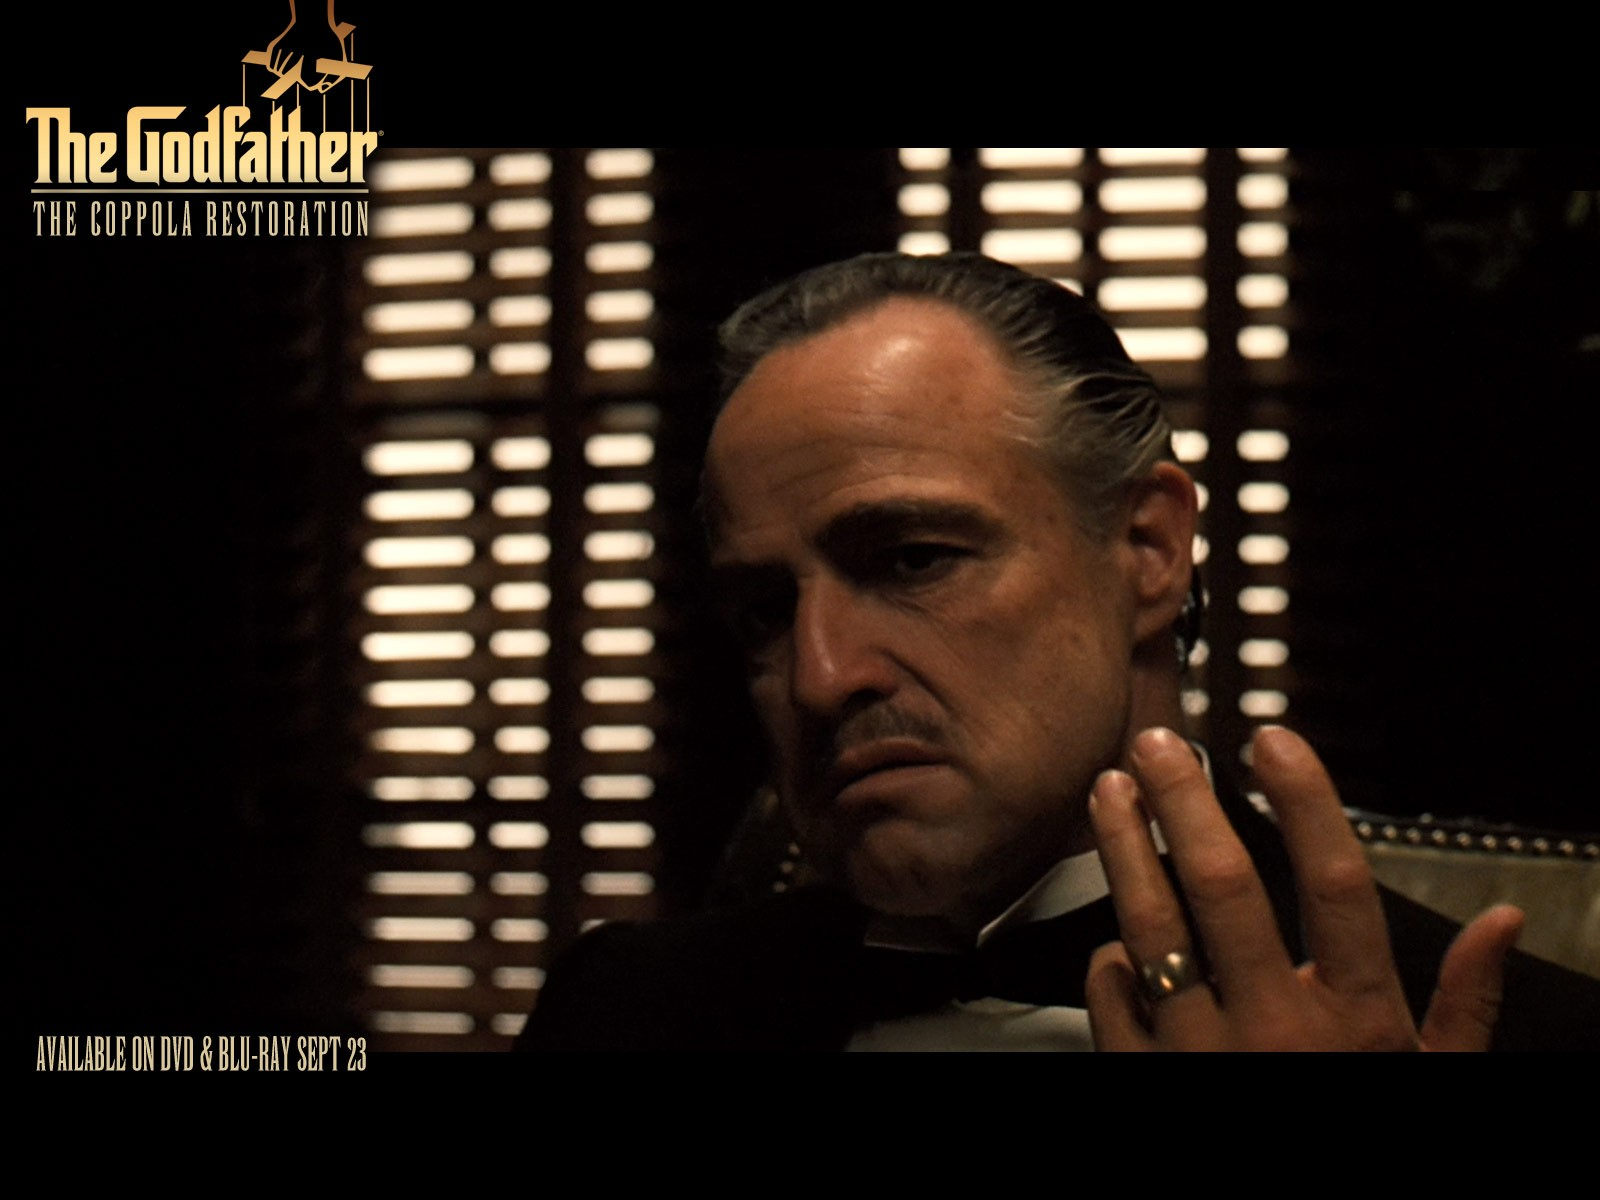 Godfather Hd Wallpaper The Godfather Movies Marlon Brando Wallpapers Hd